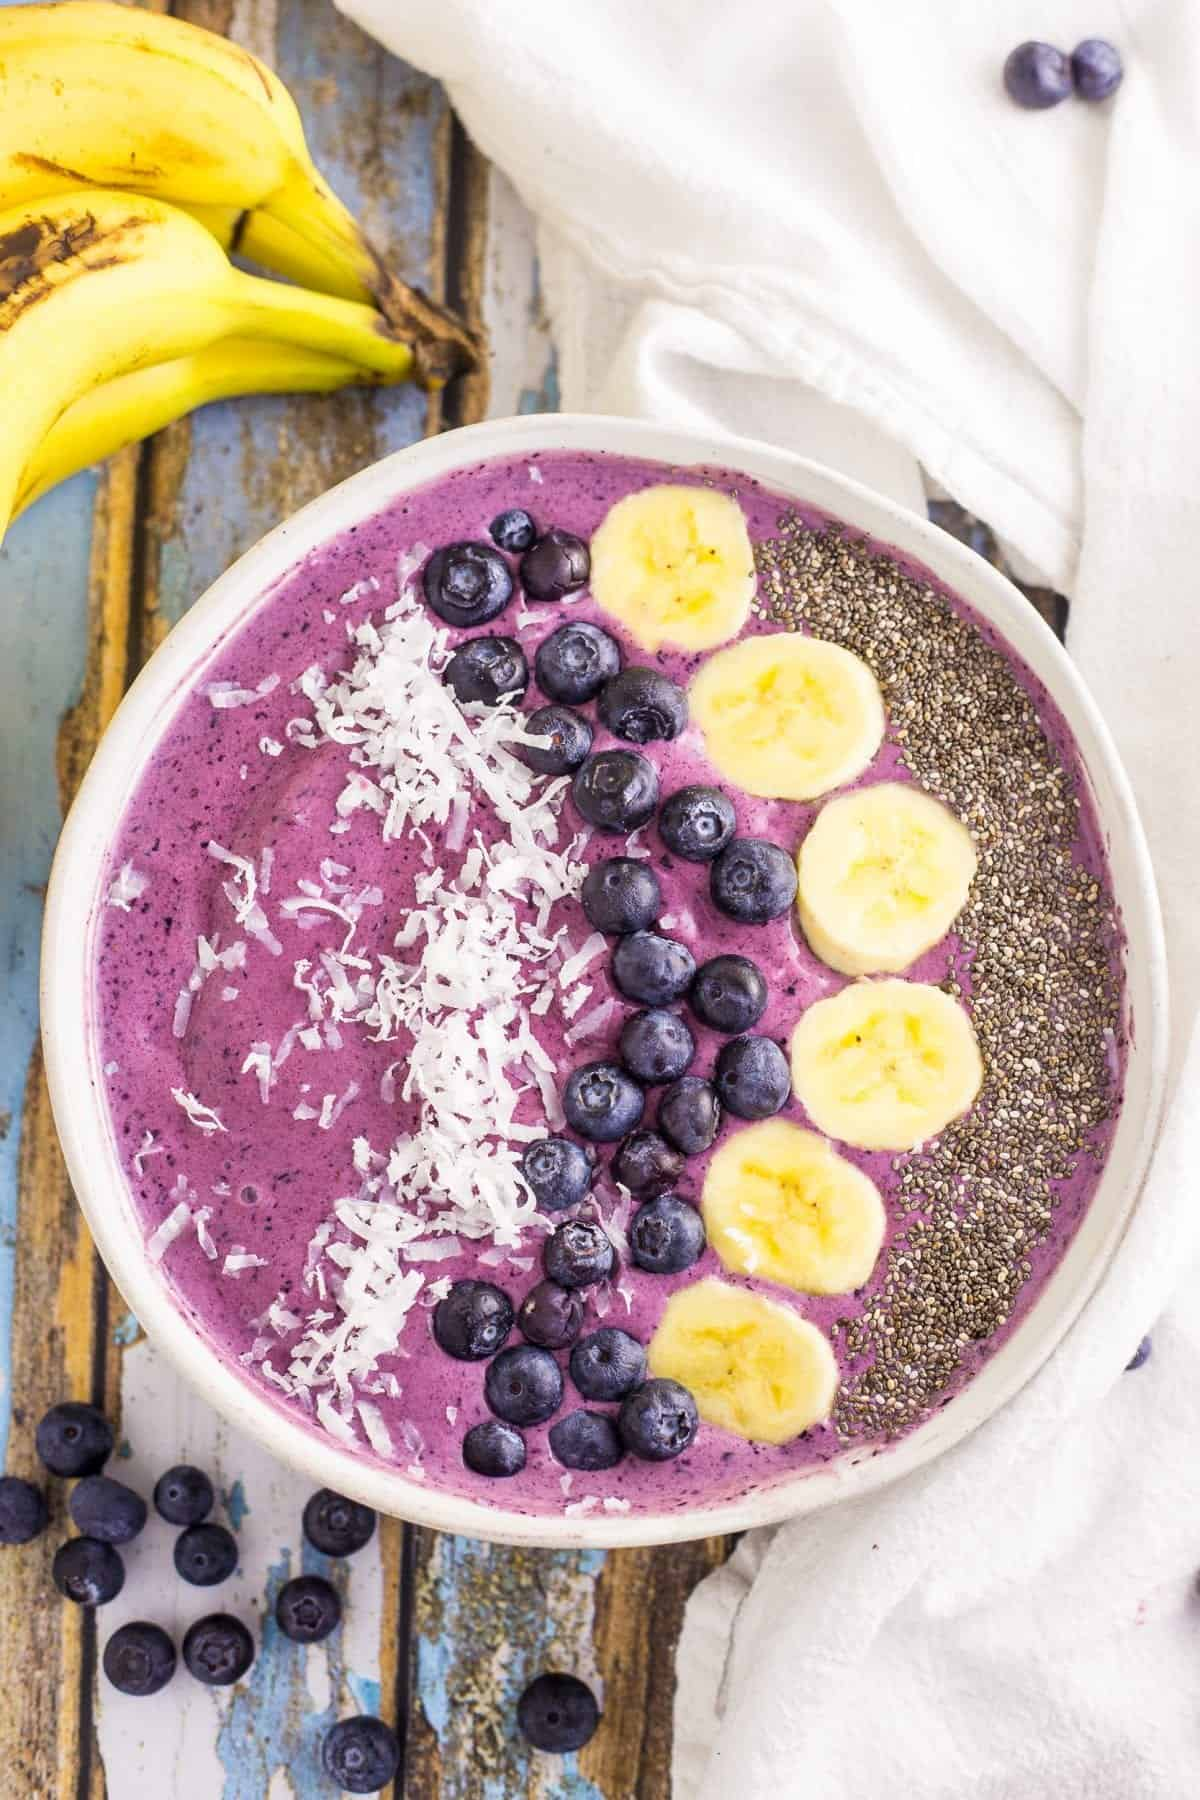 Blueberry Smoothie Bowl Blackberry Babe